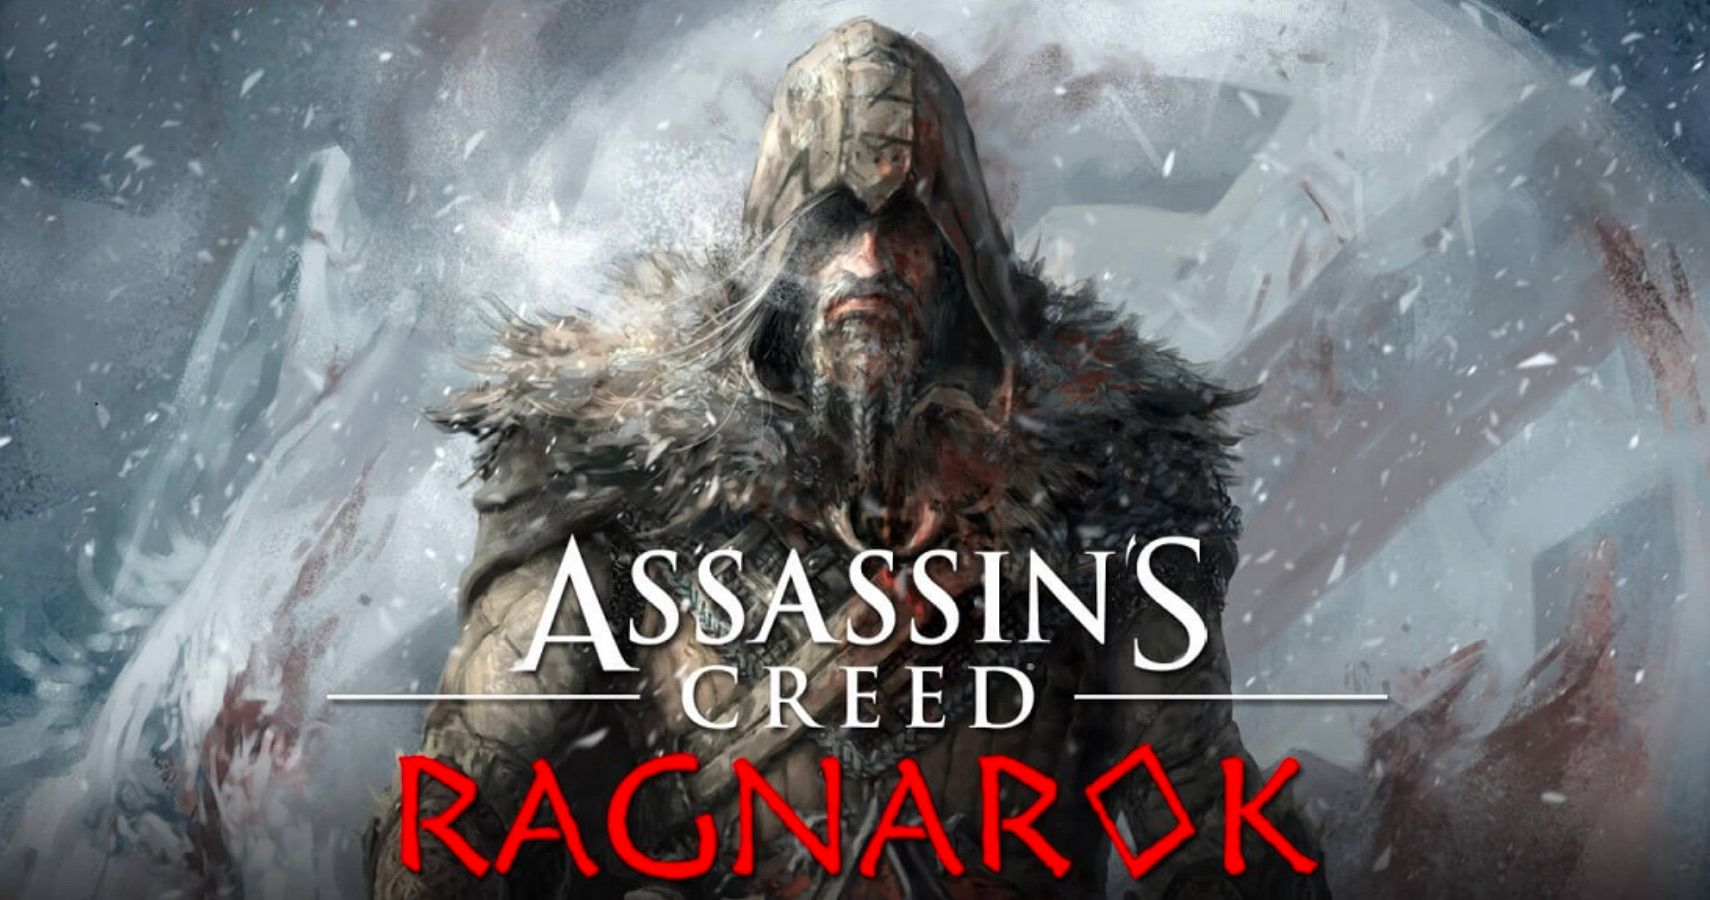 Assassin's Creed: Ragnarok